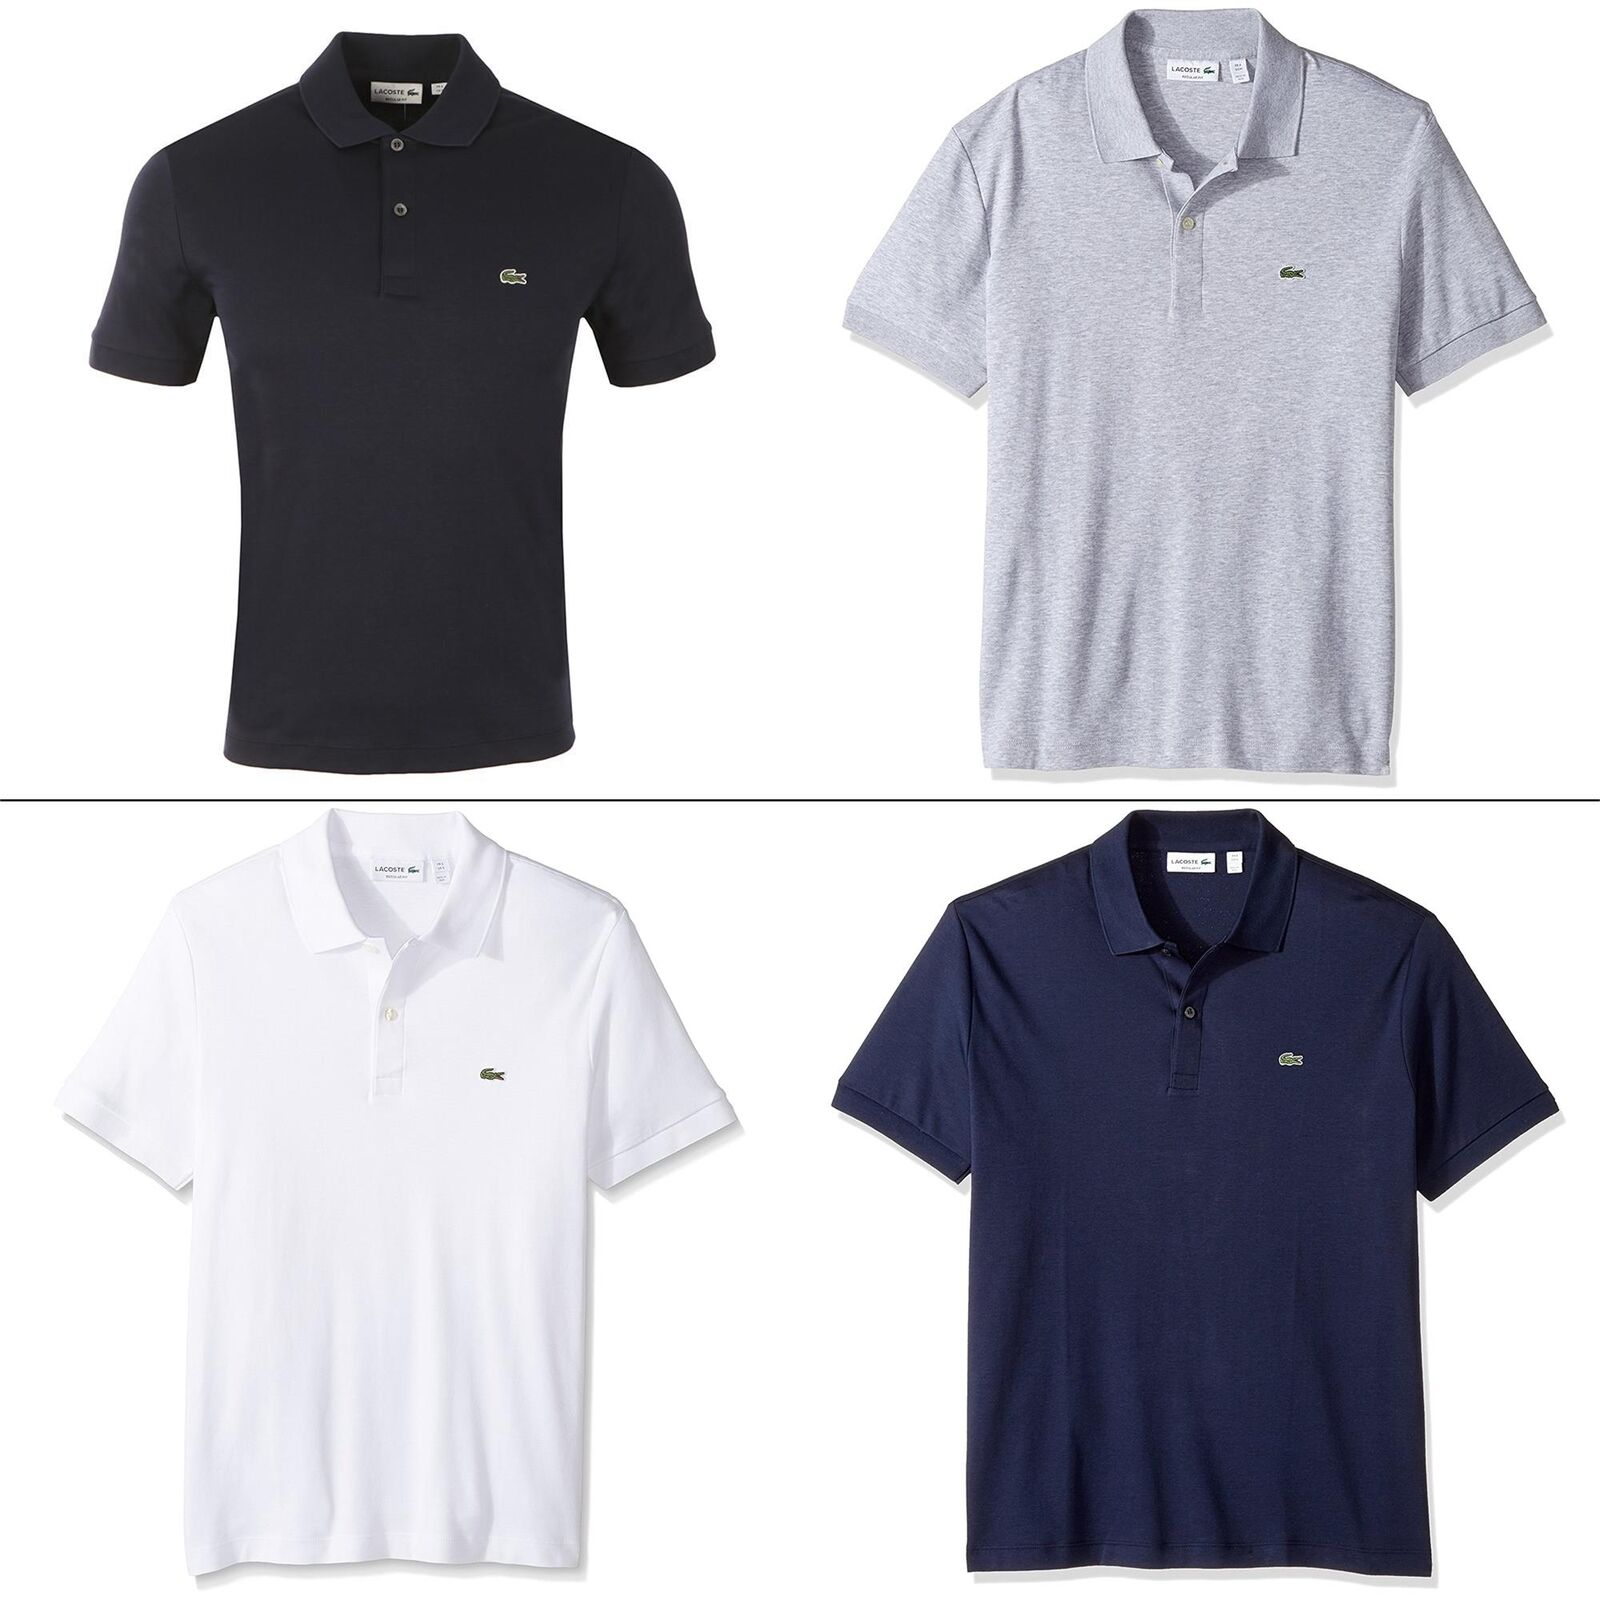 Lacoste Men T-Shirts Cotton Soft Jersey Short Sleeve Regular Fit Polo Shirt